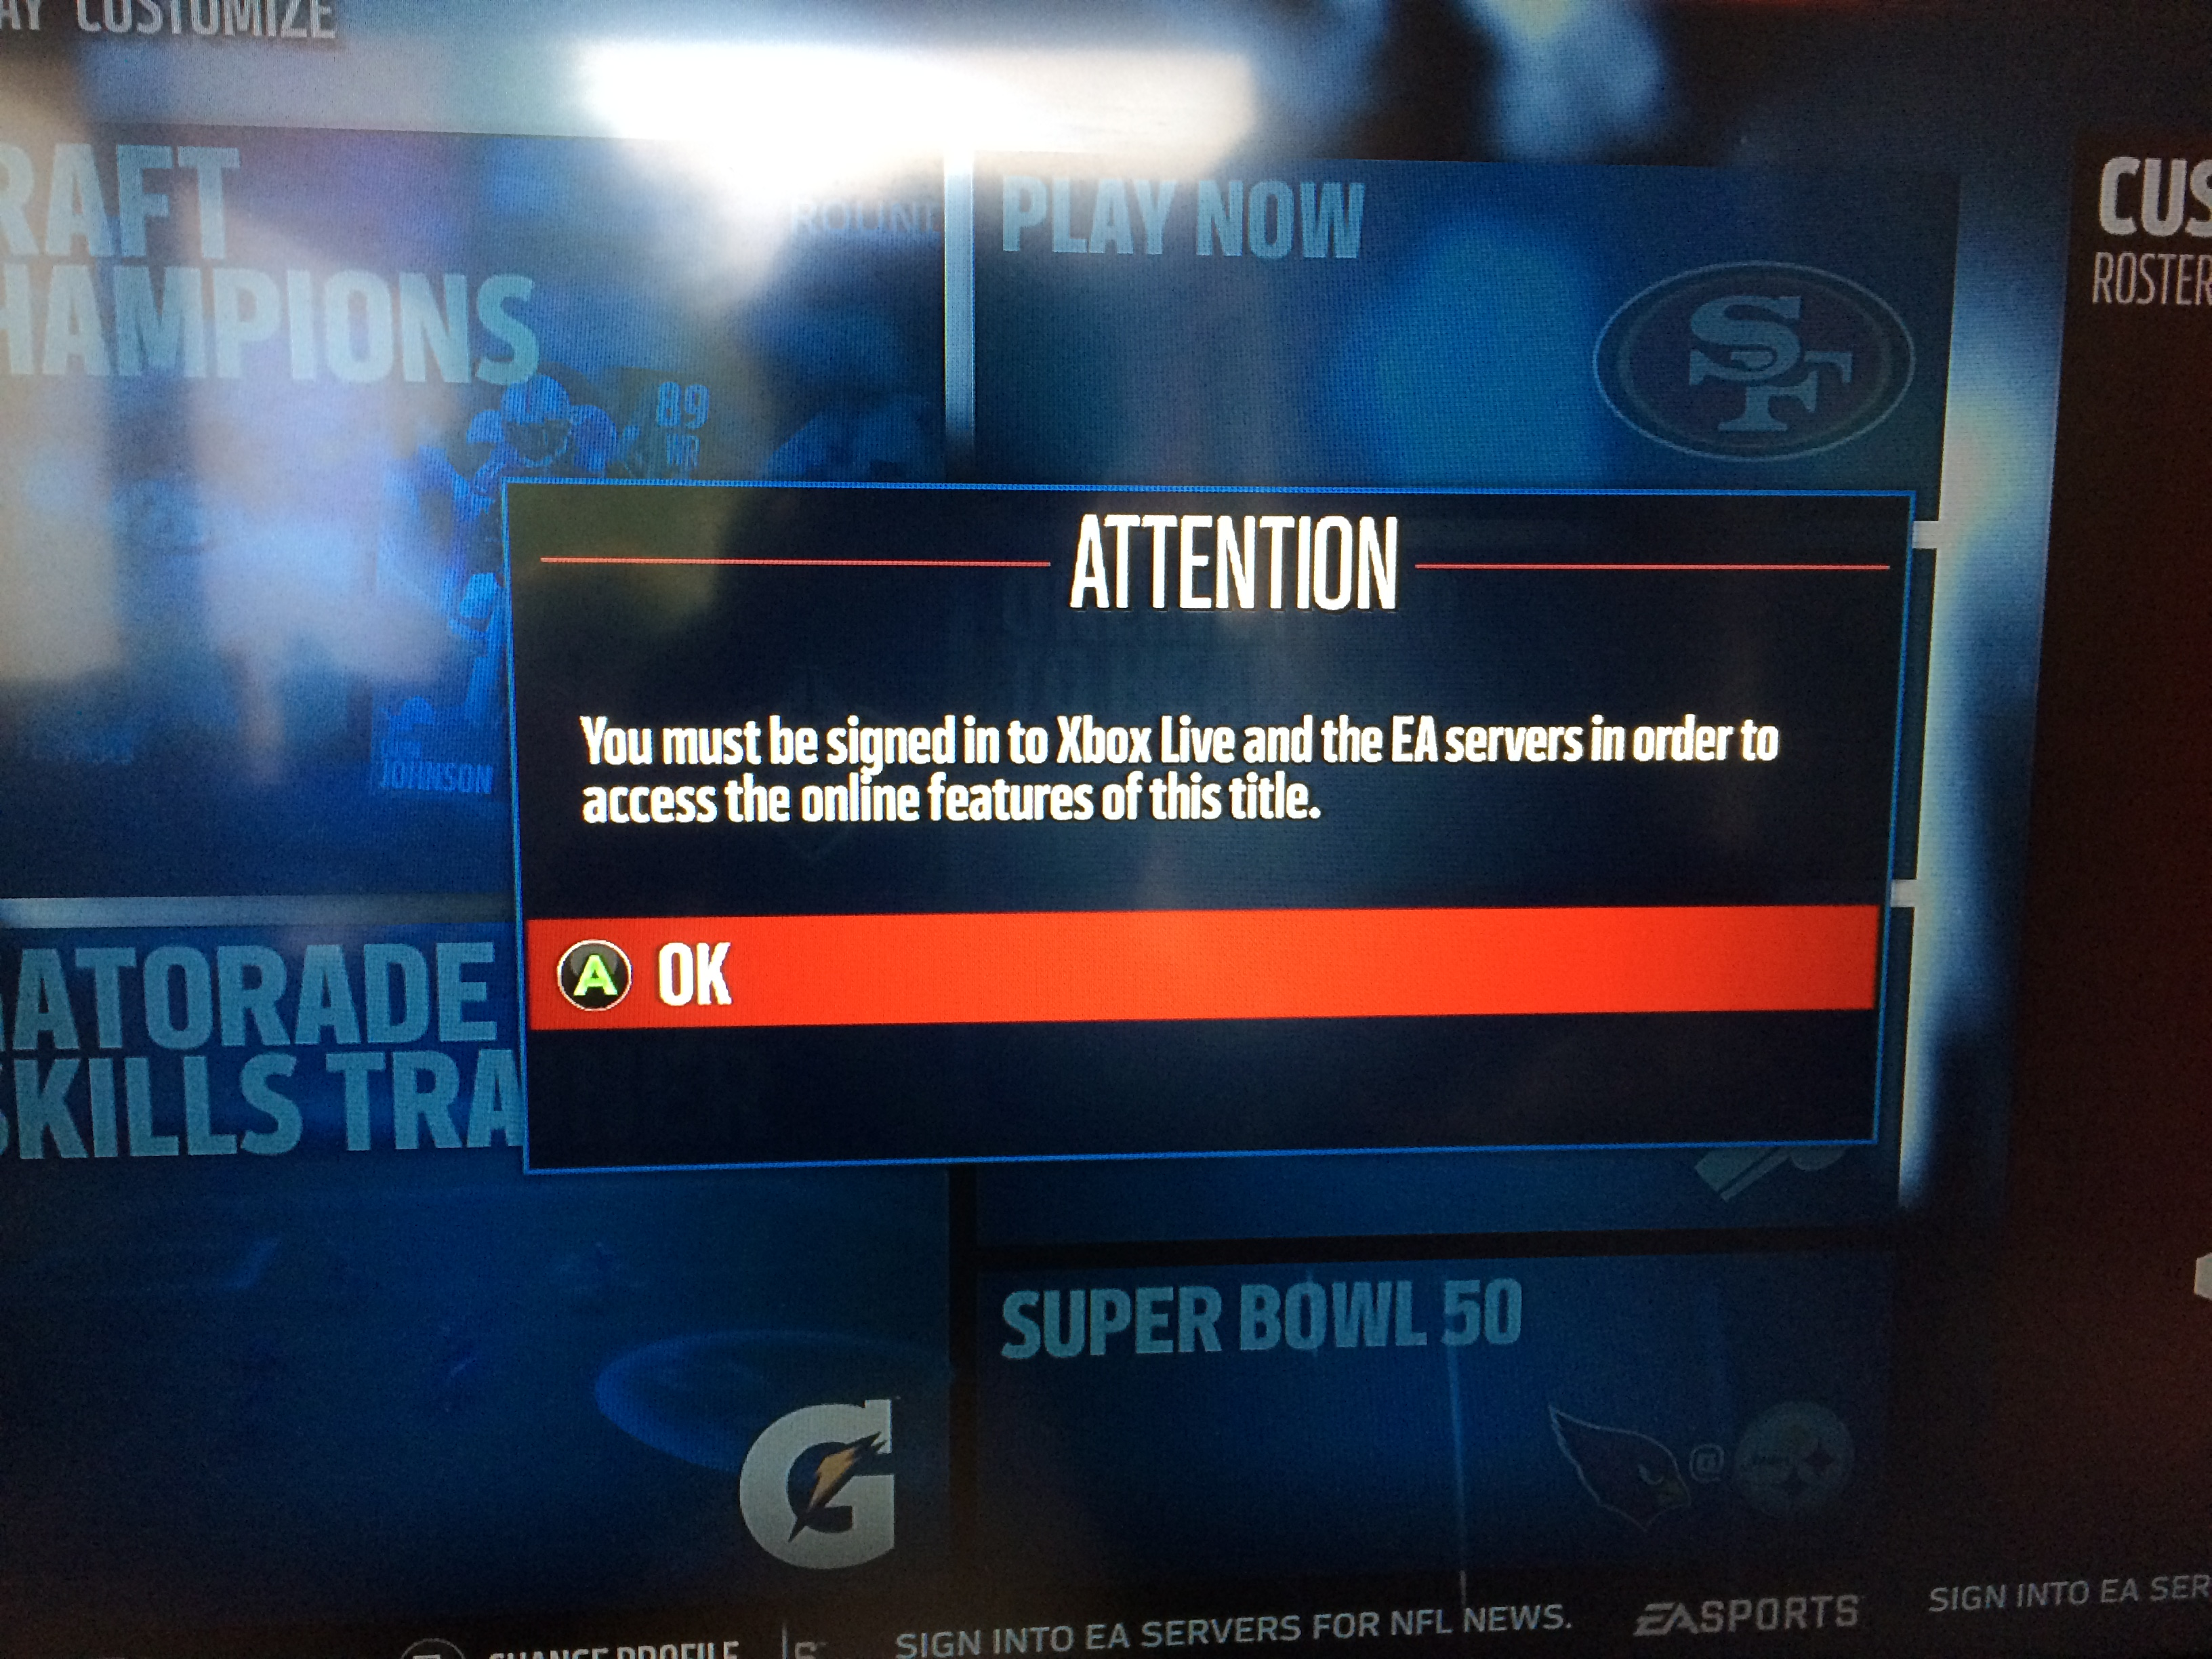 Solved: You must be signed into to Xbox Live and the EA servers to